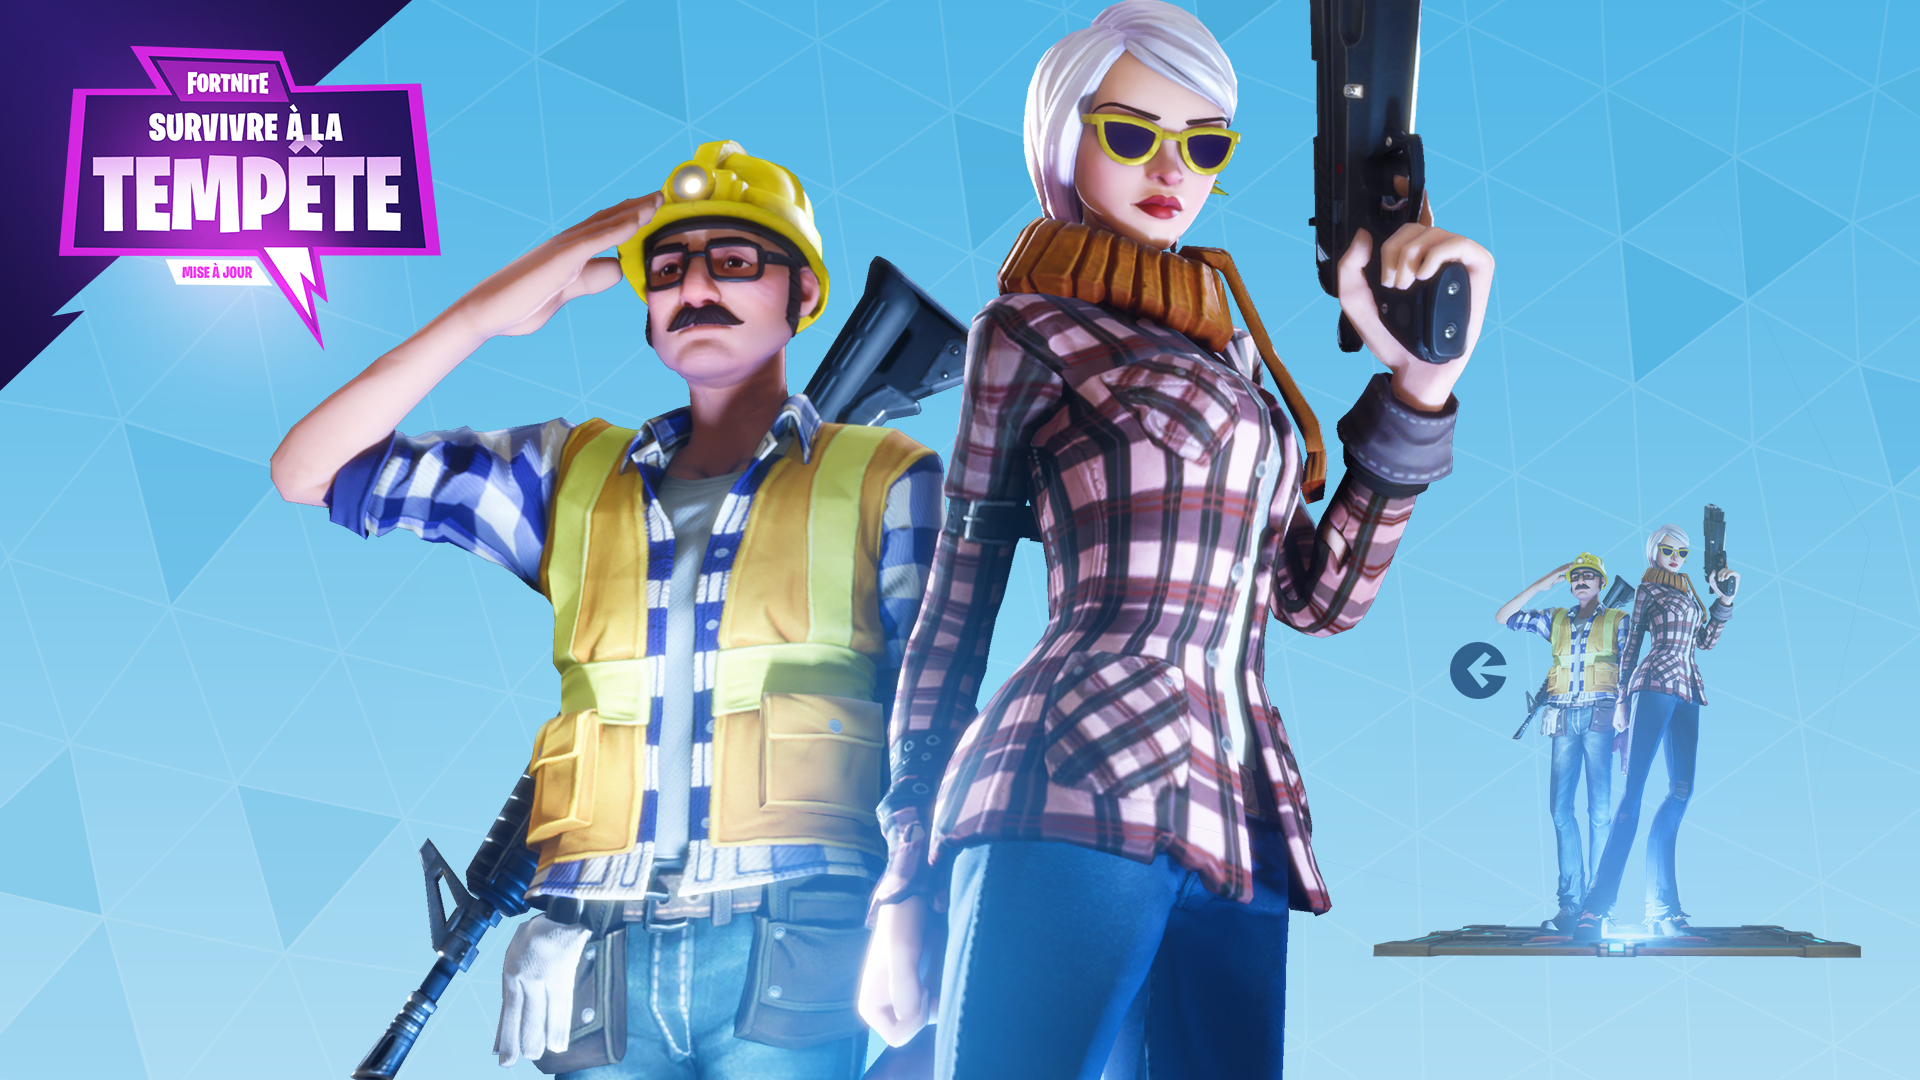 Fortnite%2Fblog%2Fsurvive-the-storm---release-notes%2FFR_Defenders-1920x1080-119dfe1af14c4282da60715c0d0dd66d9b31c876